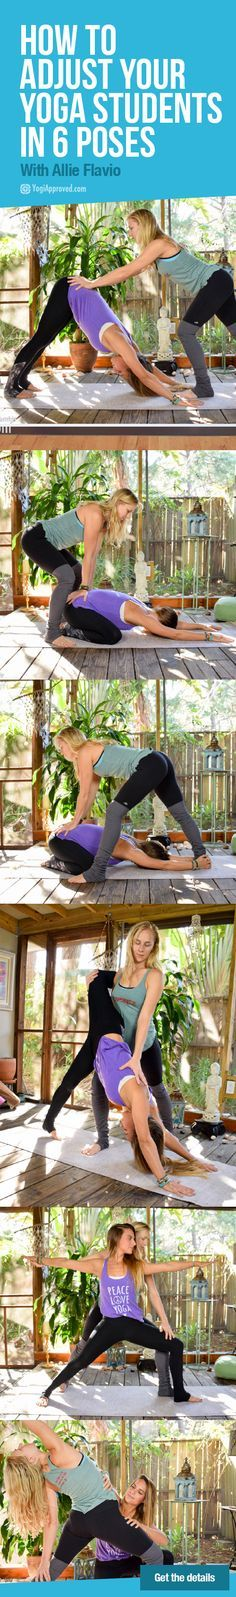 How to Adjust Your Yoga Students in 6 Poses